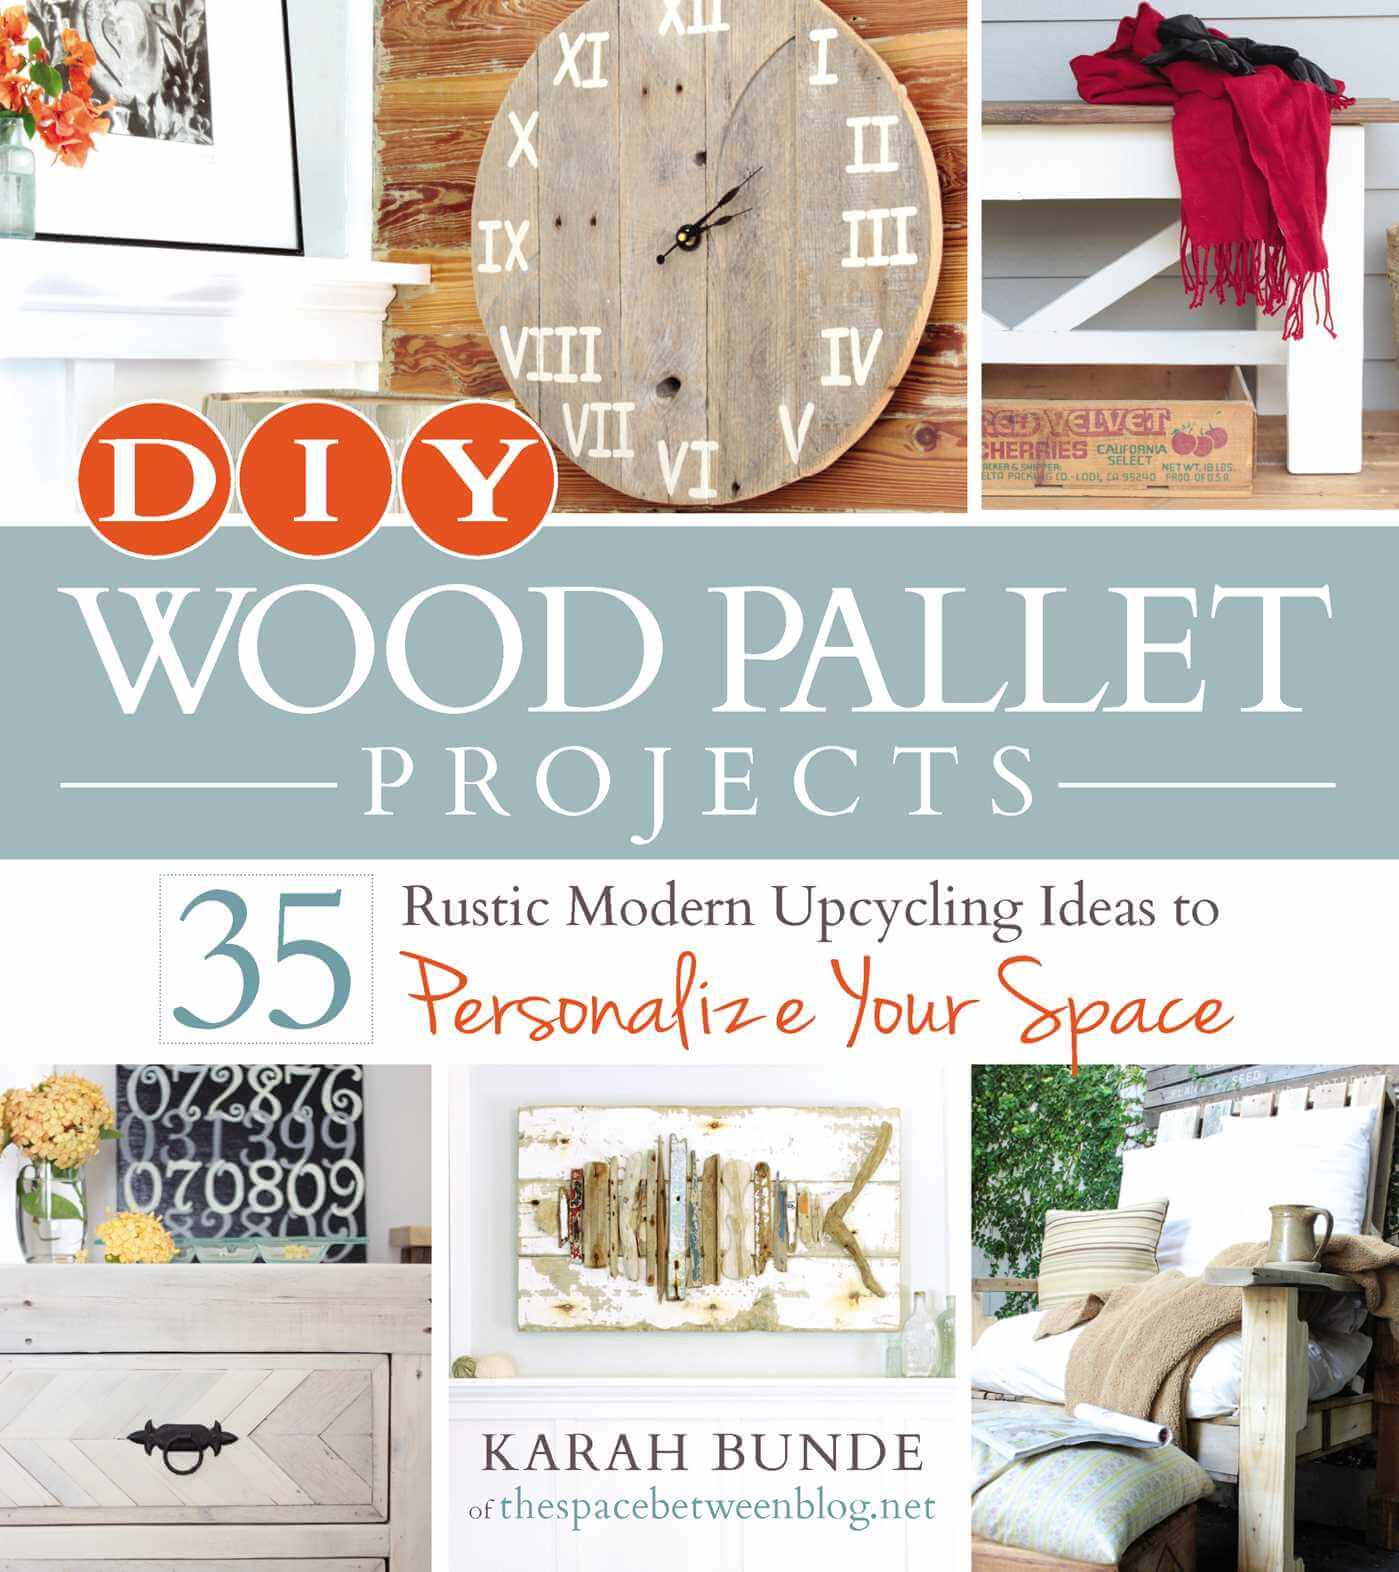 DIY Wood Pallet Projects book cover image